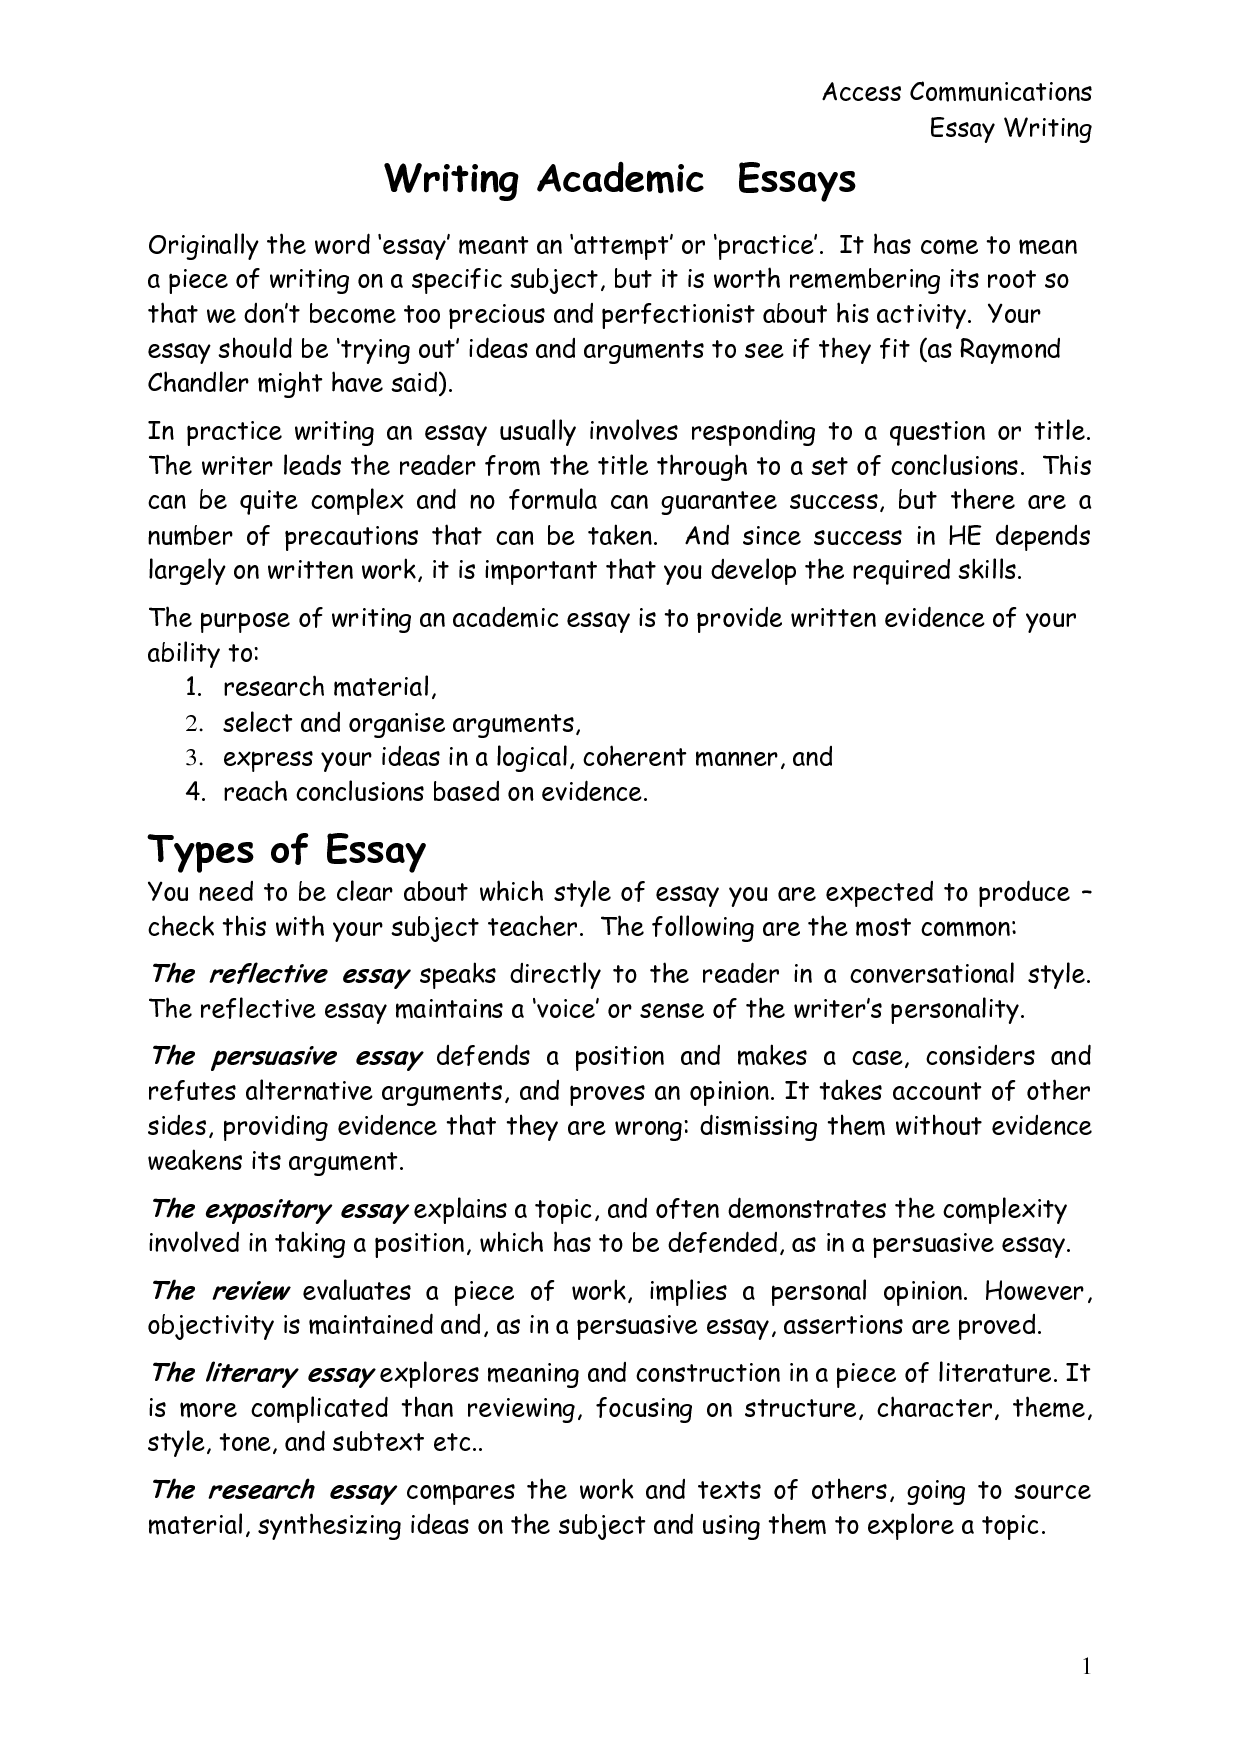 016 Reflective Essay On Academic Writings Beautiful Examples For Middle School Apa High Full